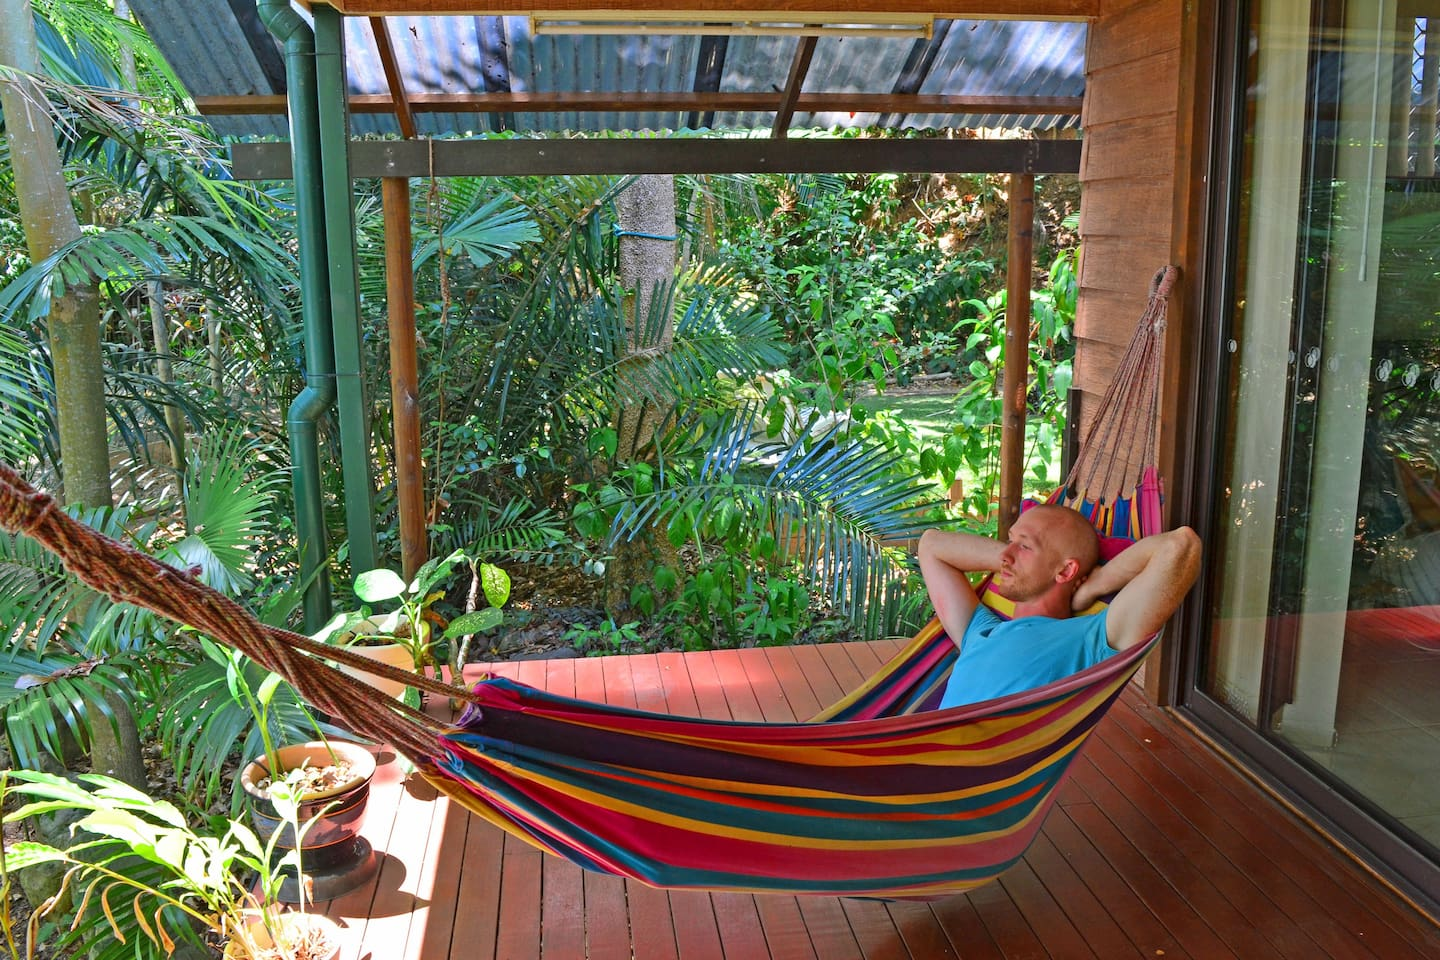 Guest enjoys relaxing on the hammock